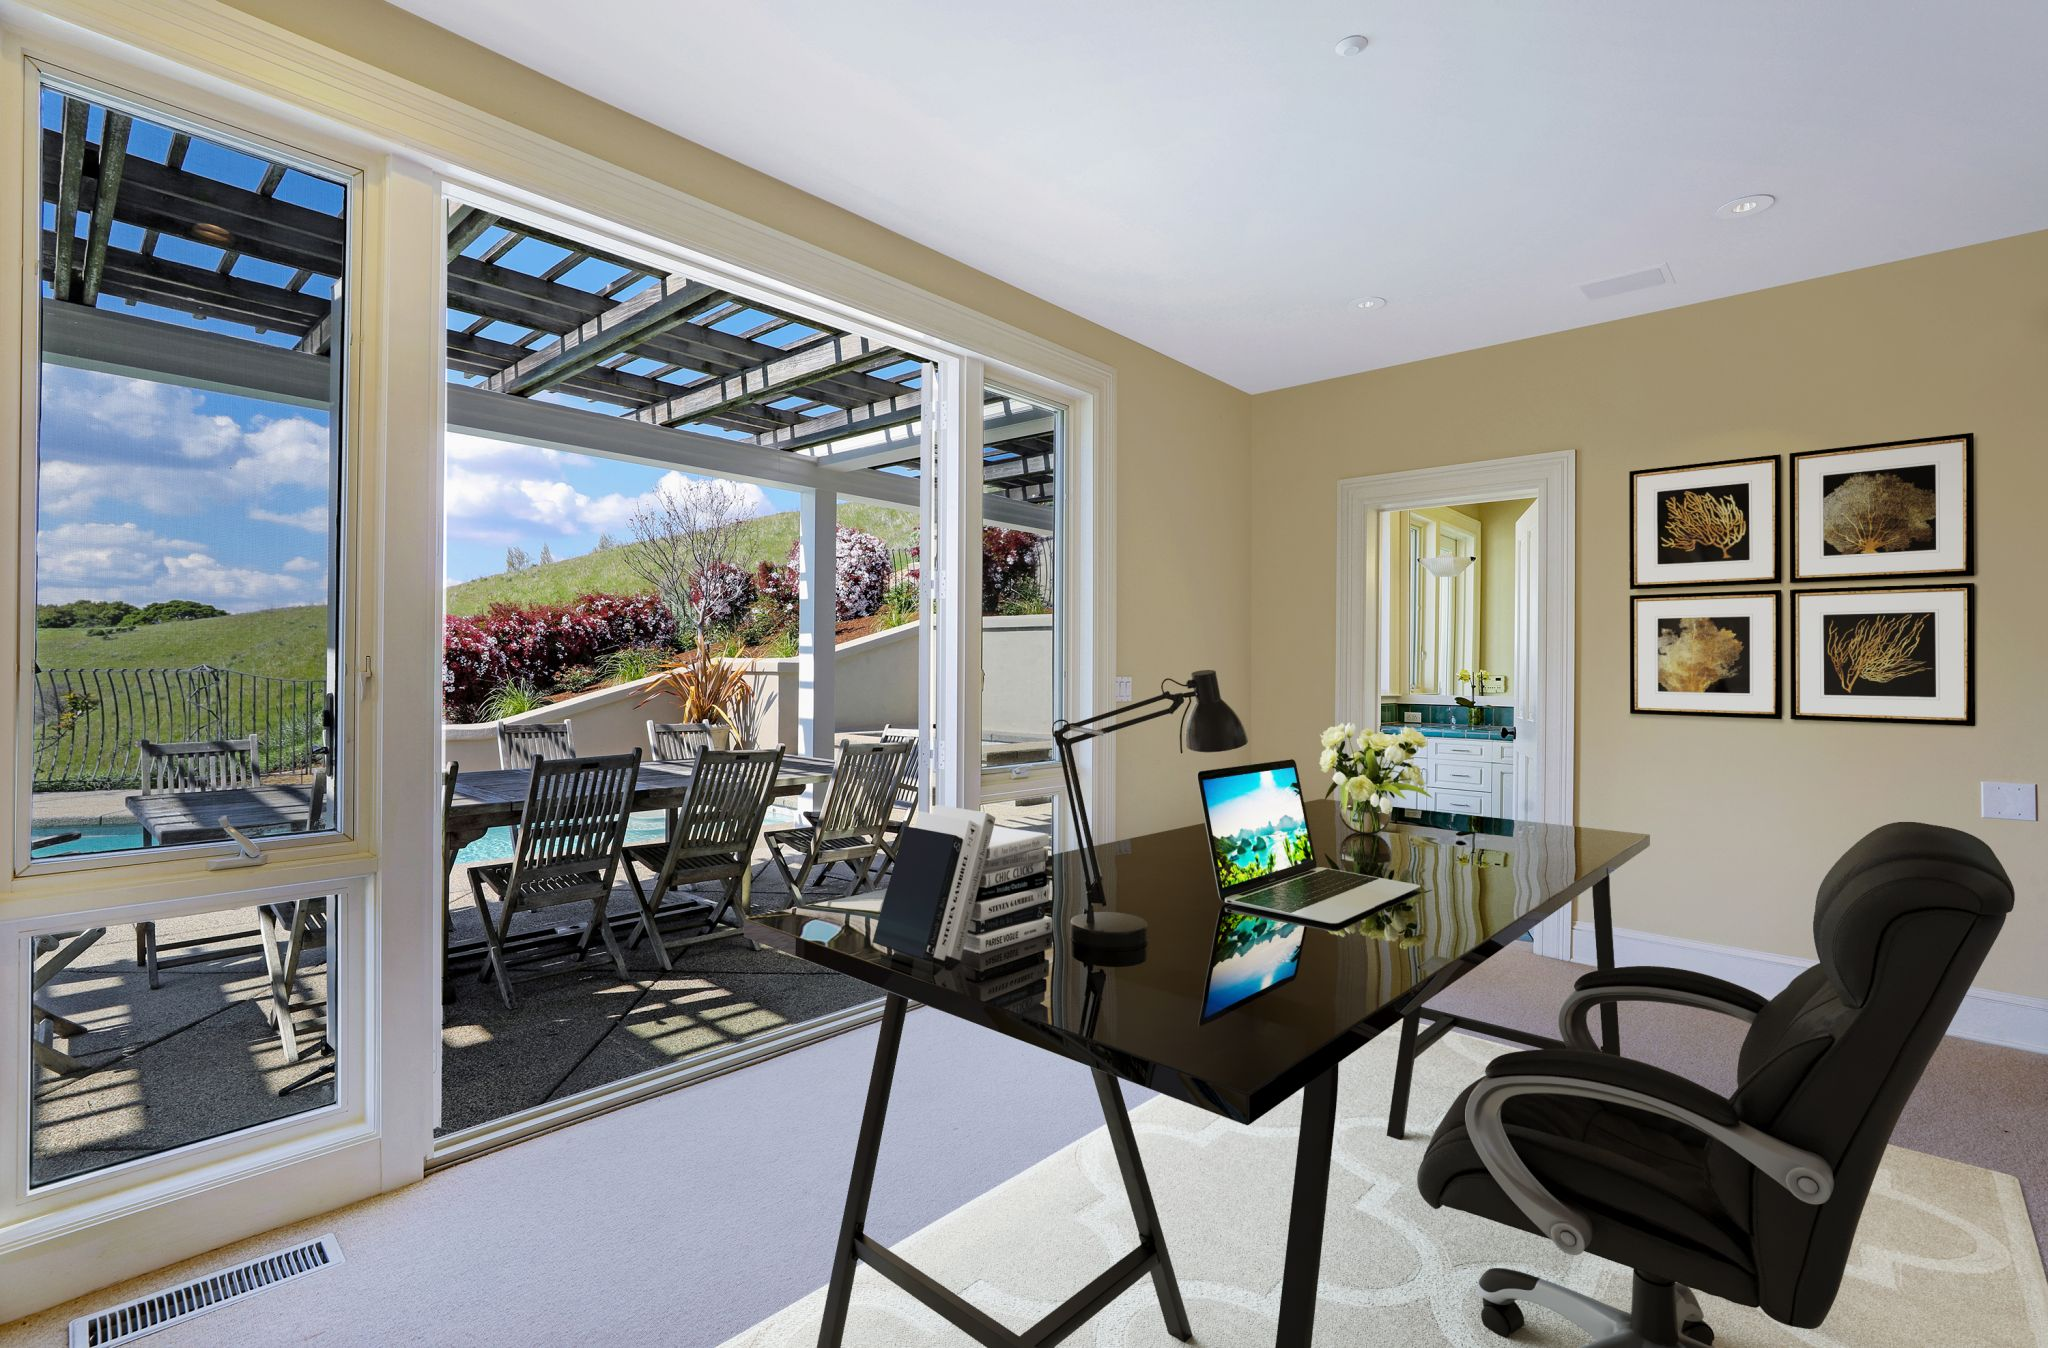 The home features an office with pool view as well as the stunning surroundings beyond.